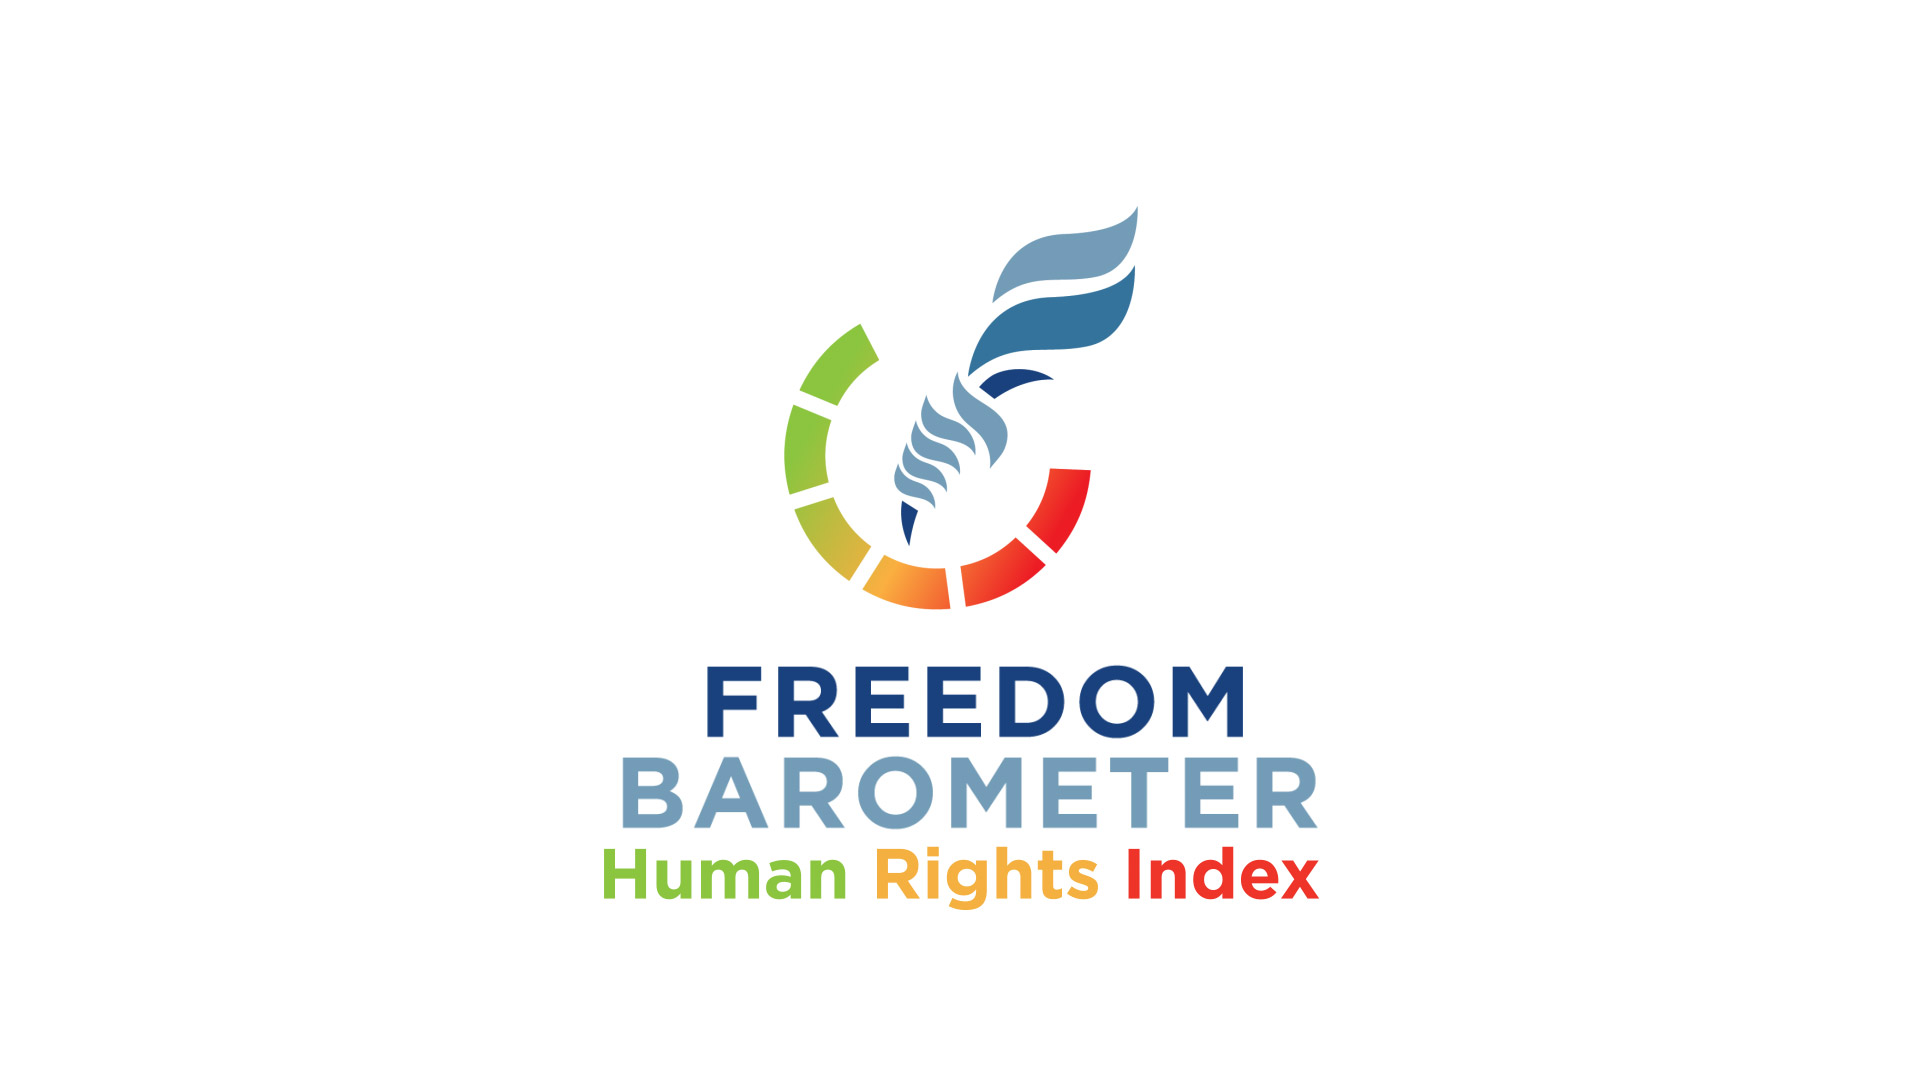 Finding Freedom: Human rights and where to find them